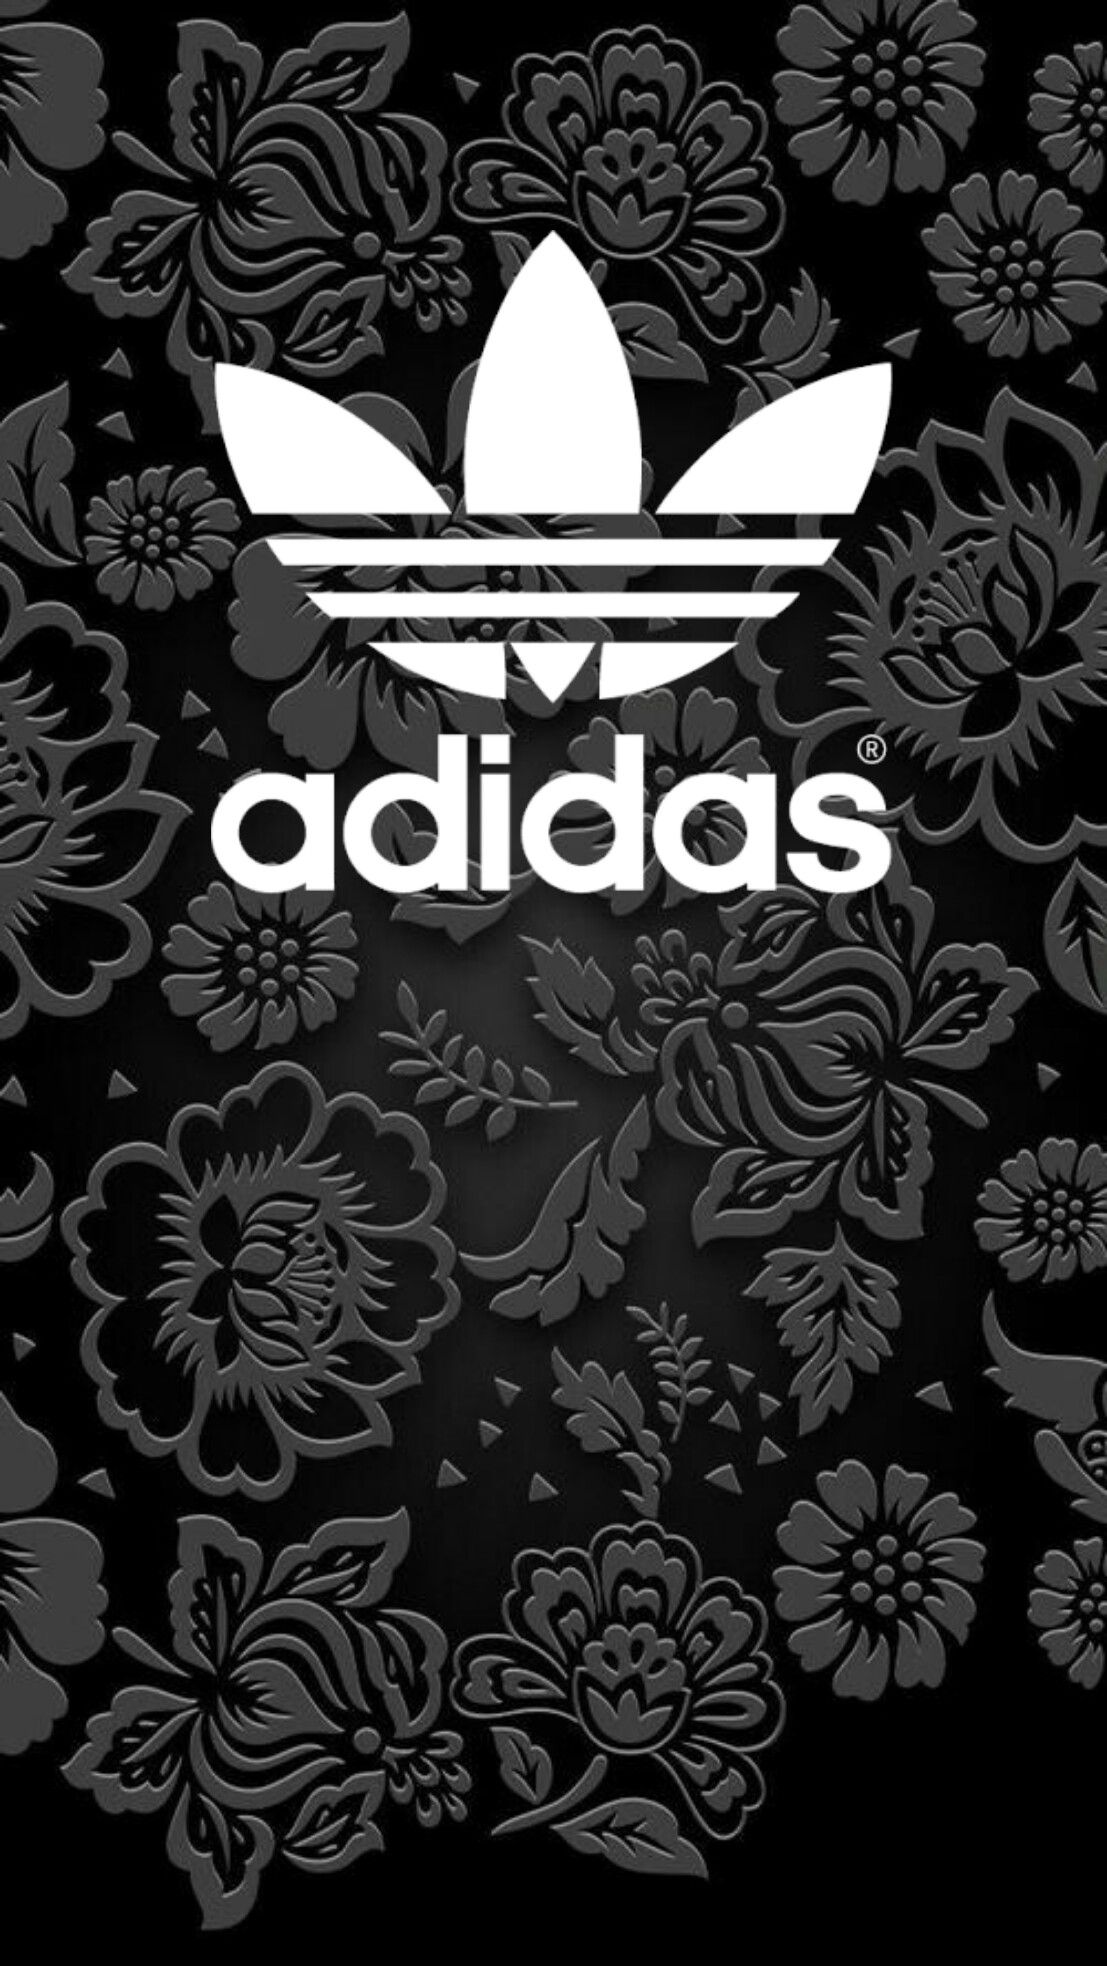 adidas black wallpaper android iphone (With images